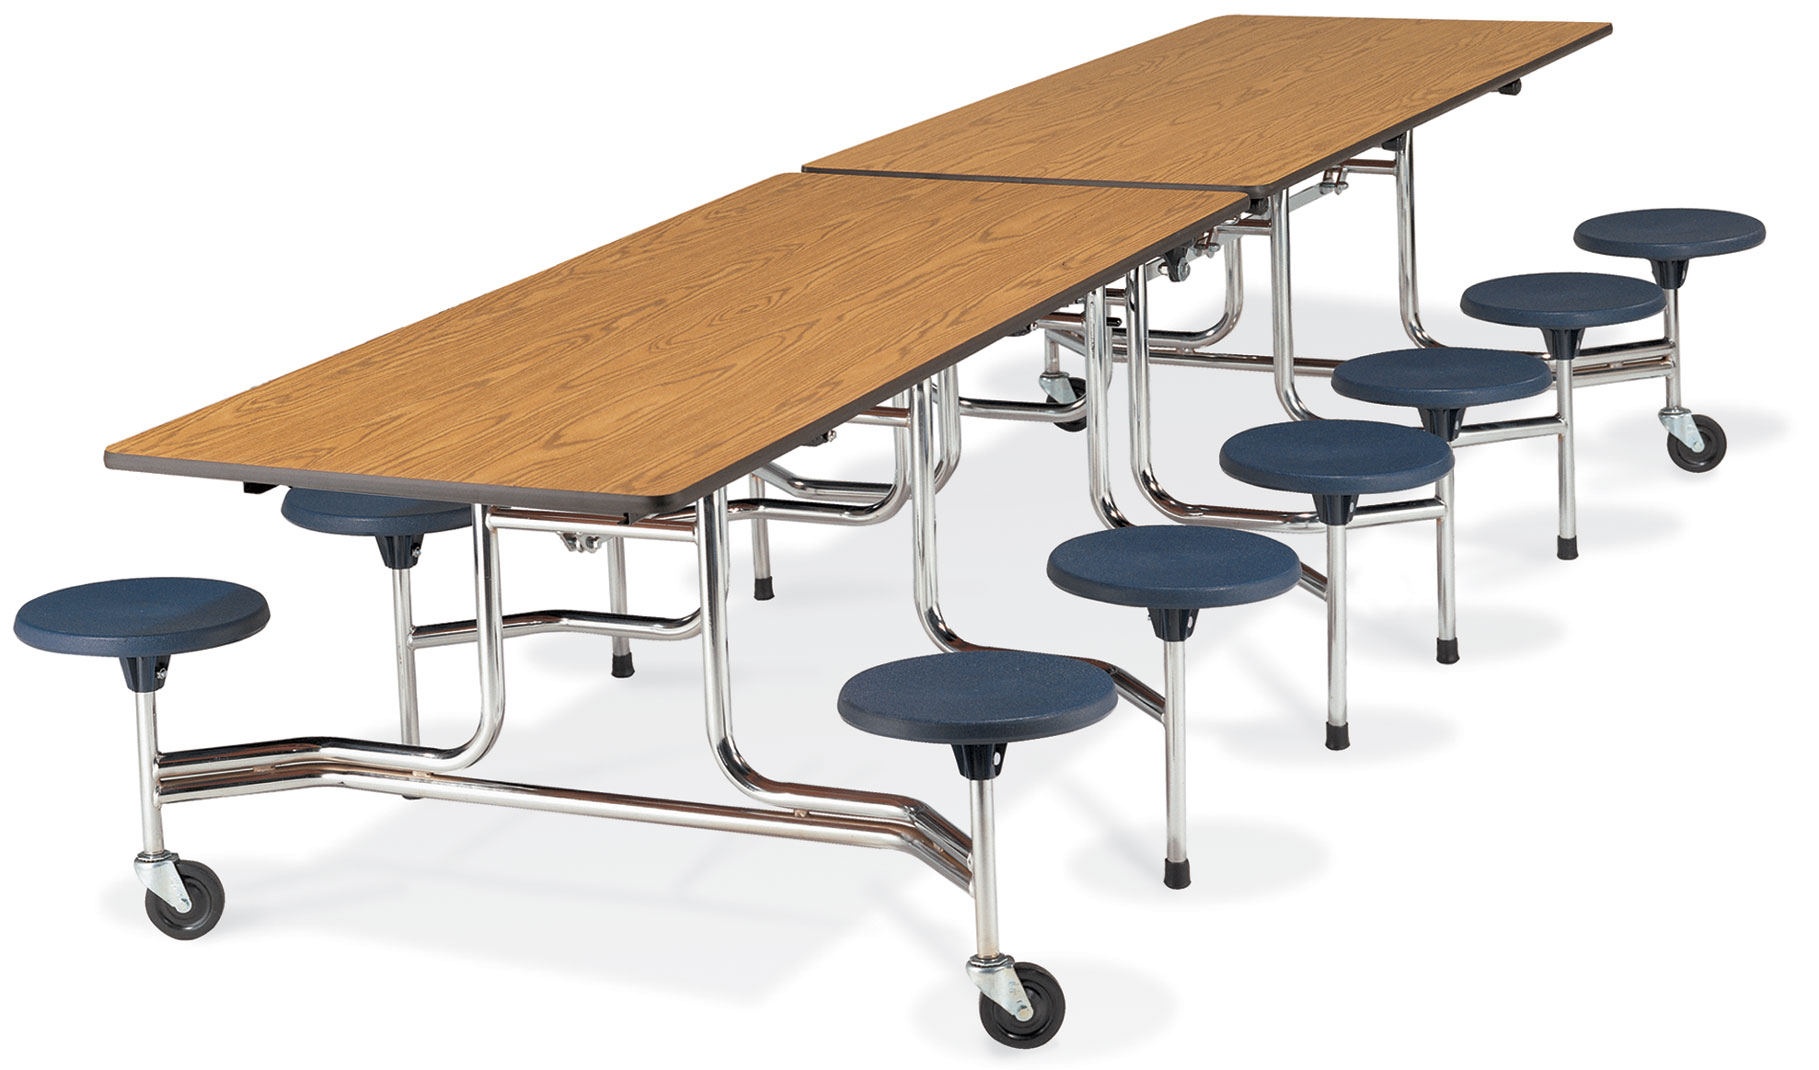 Bench clipart lunch table Tables Chairs Shop Tables Cafeteria